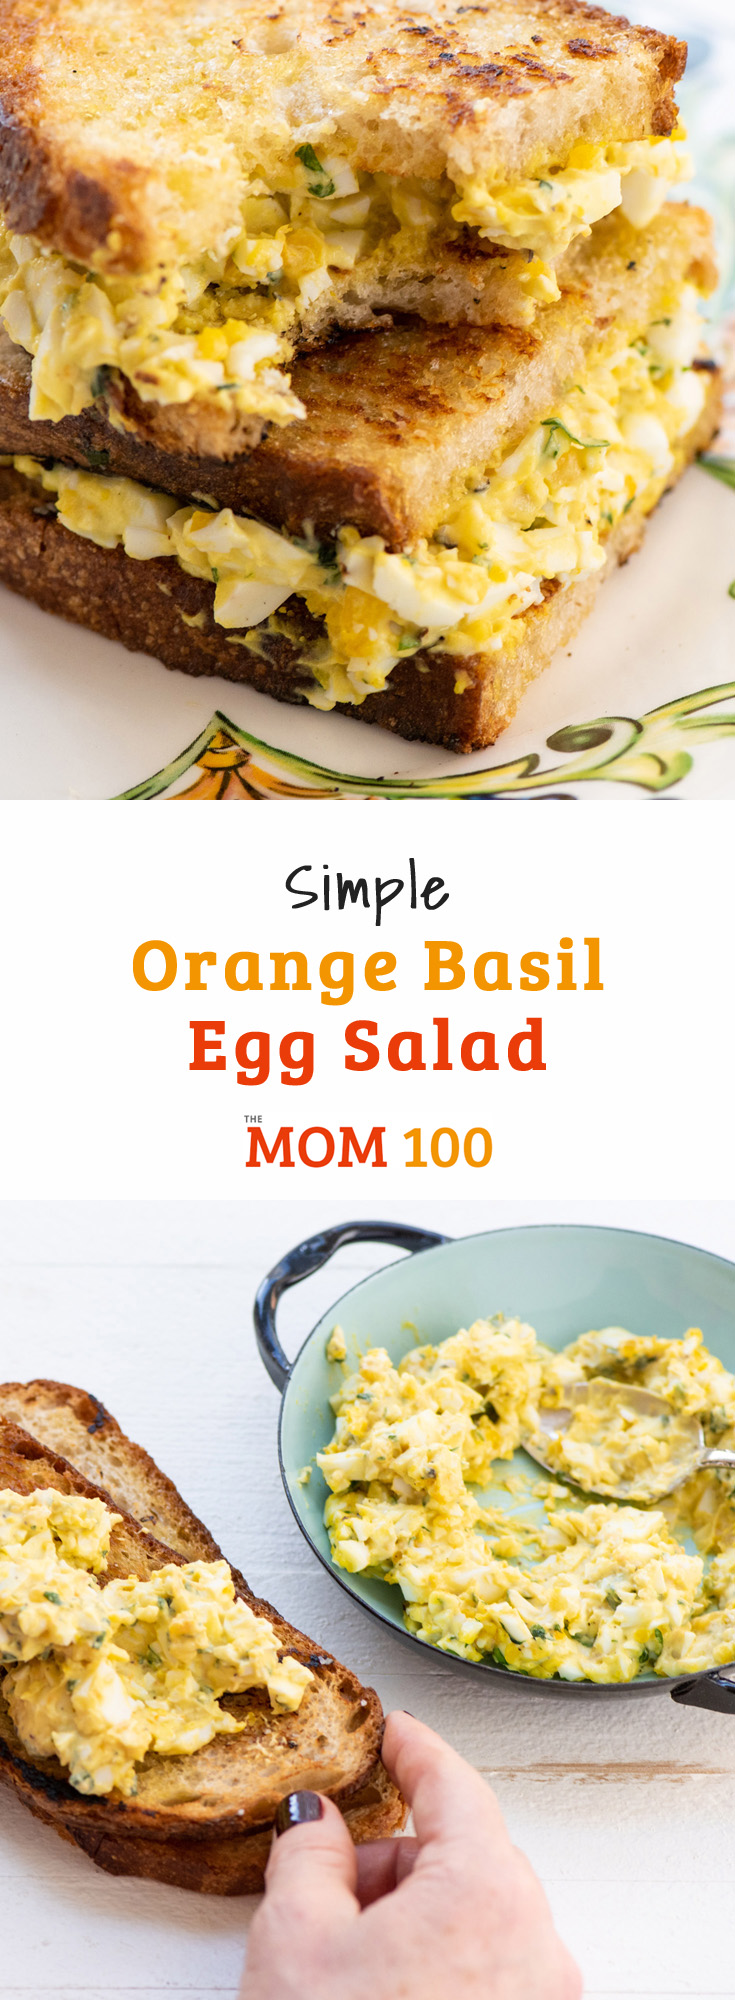 Simple Orange Basil Egg Salad: A modern variation on the luncheonette classic. Heap it on crackers, grab some bread or toast and make a sandwich or eat it out of the bowl.